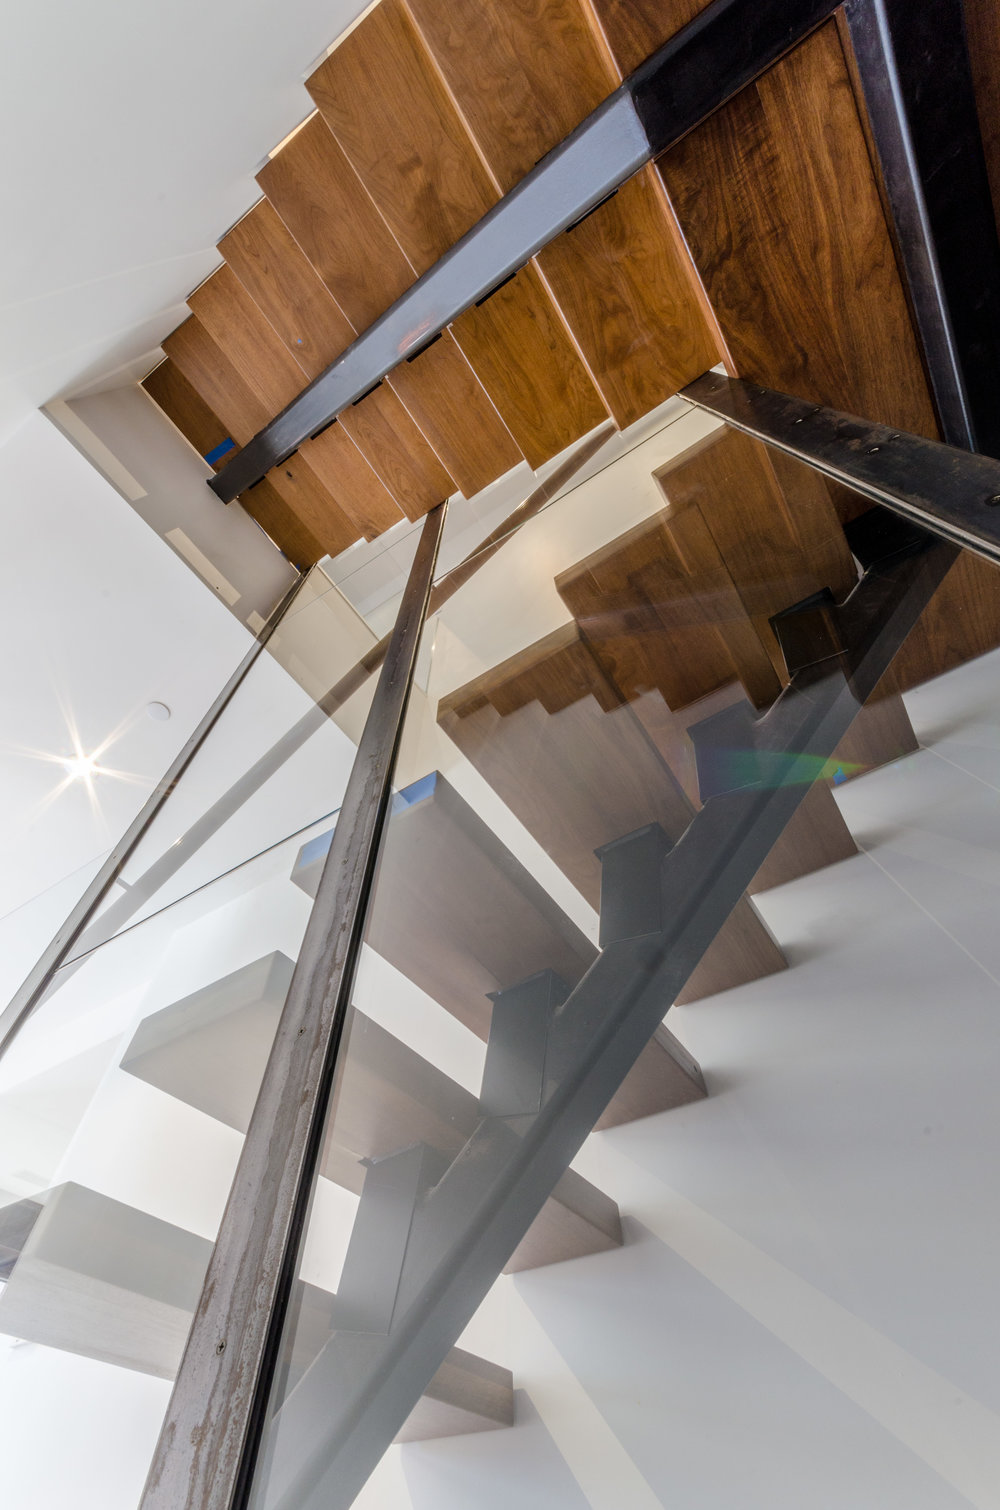 TRAstudio_173WestBroadway_Tribeca_4th Floor Interior_Stair_Glass_Underneath.jpg